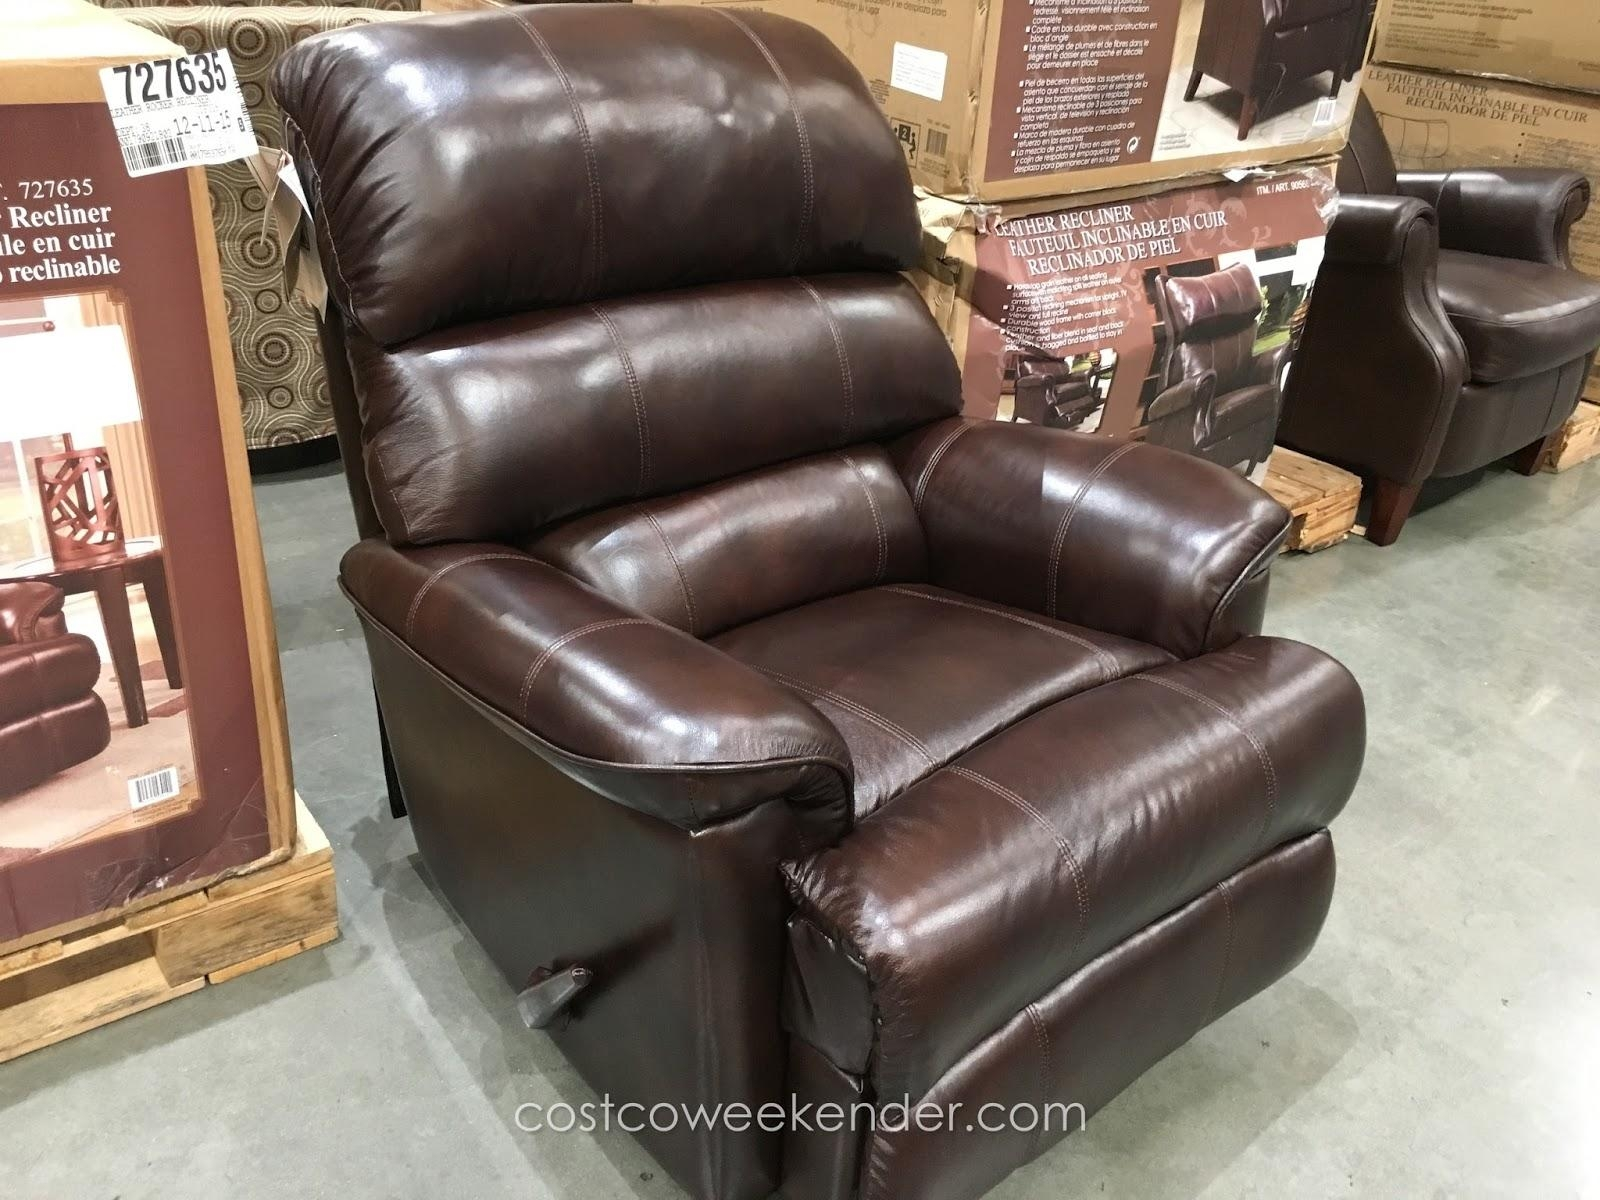 Sofas Center : Stunning Costco Recliner Sofa Images Concept Inside Berkline Leather Sofas (Image 19 of 20)